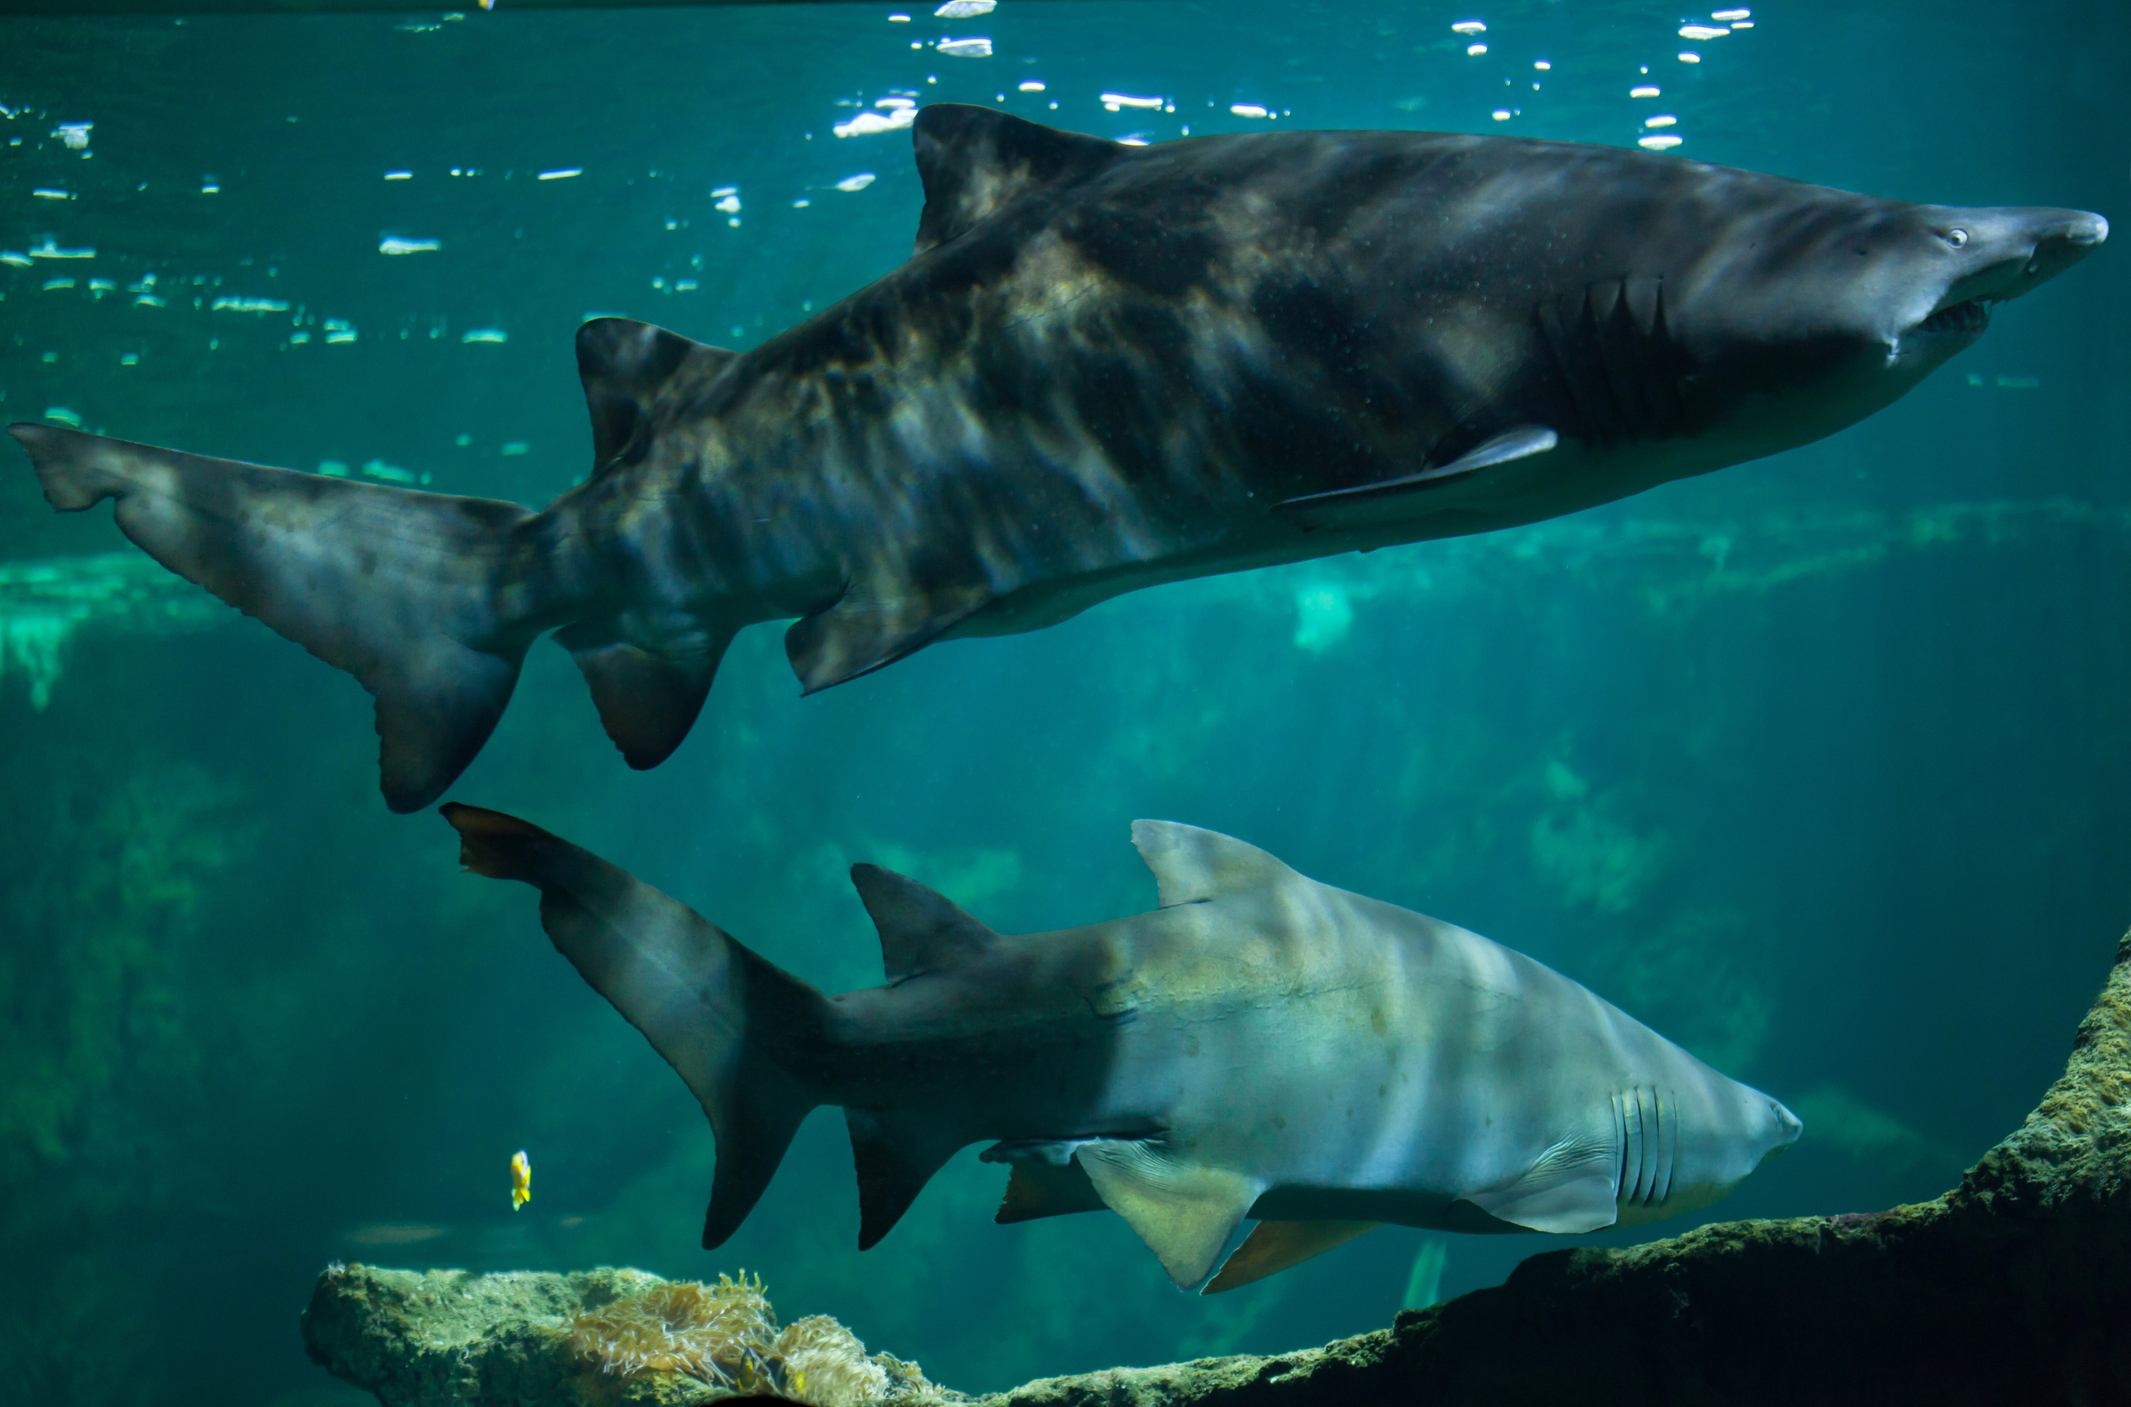 two sand tiger sharks in a tank